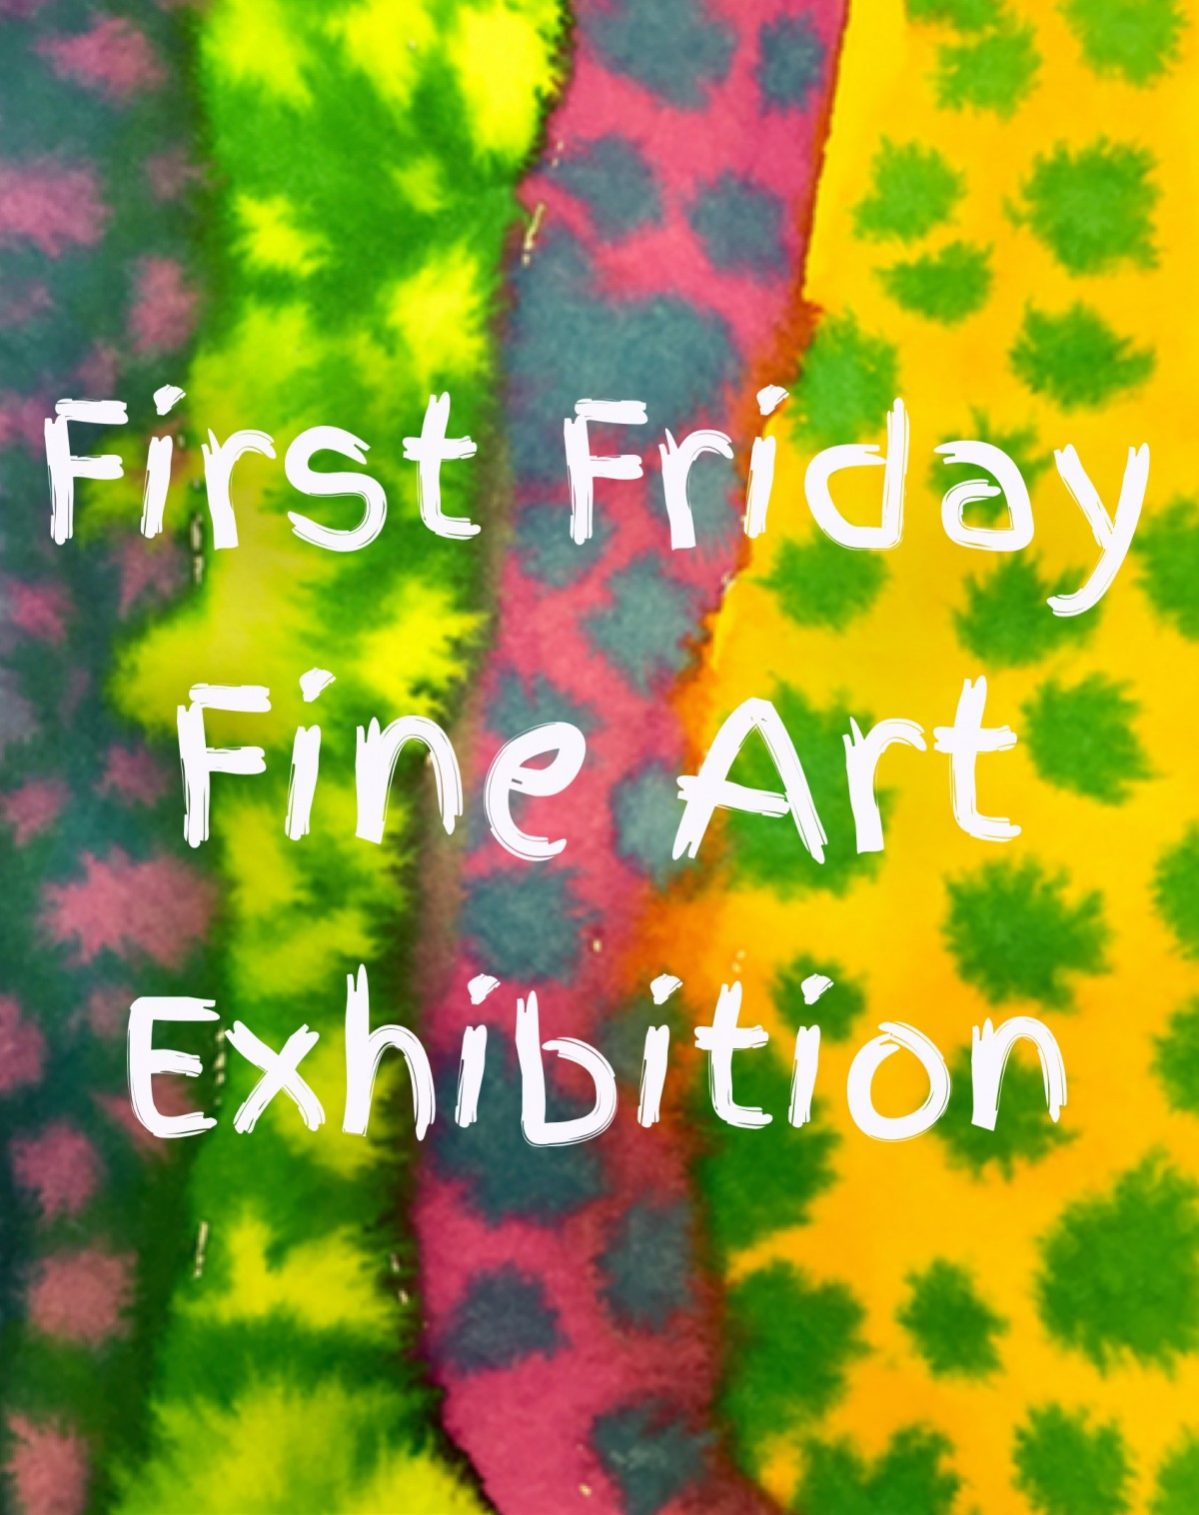 February 2016 First Friday